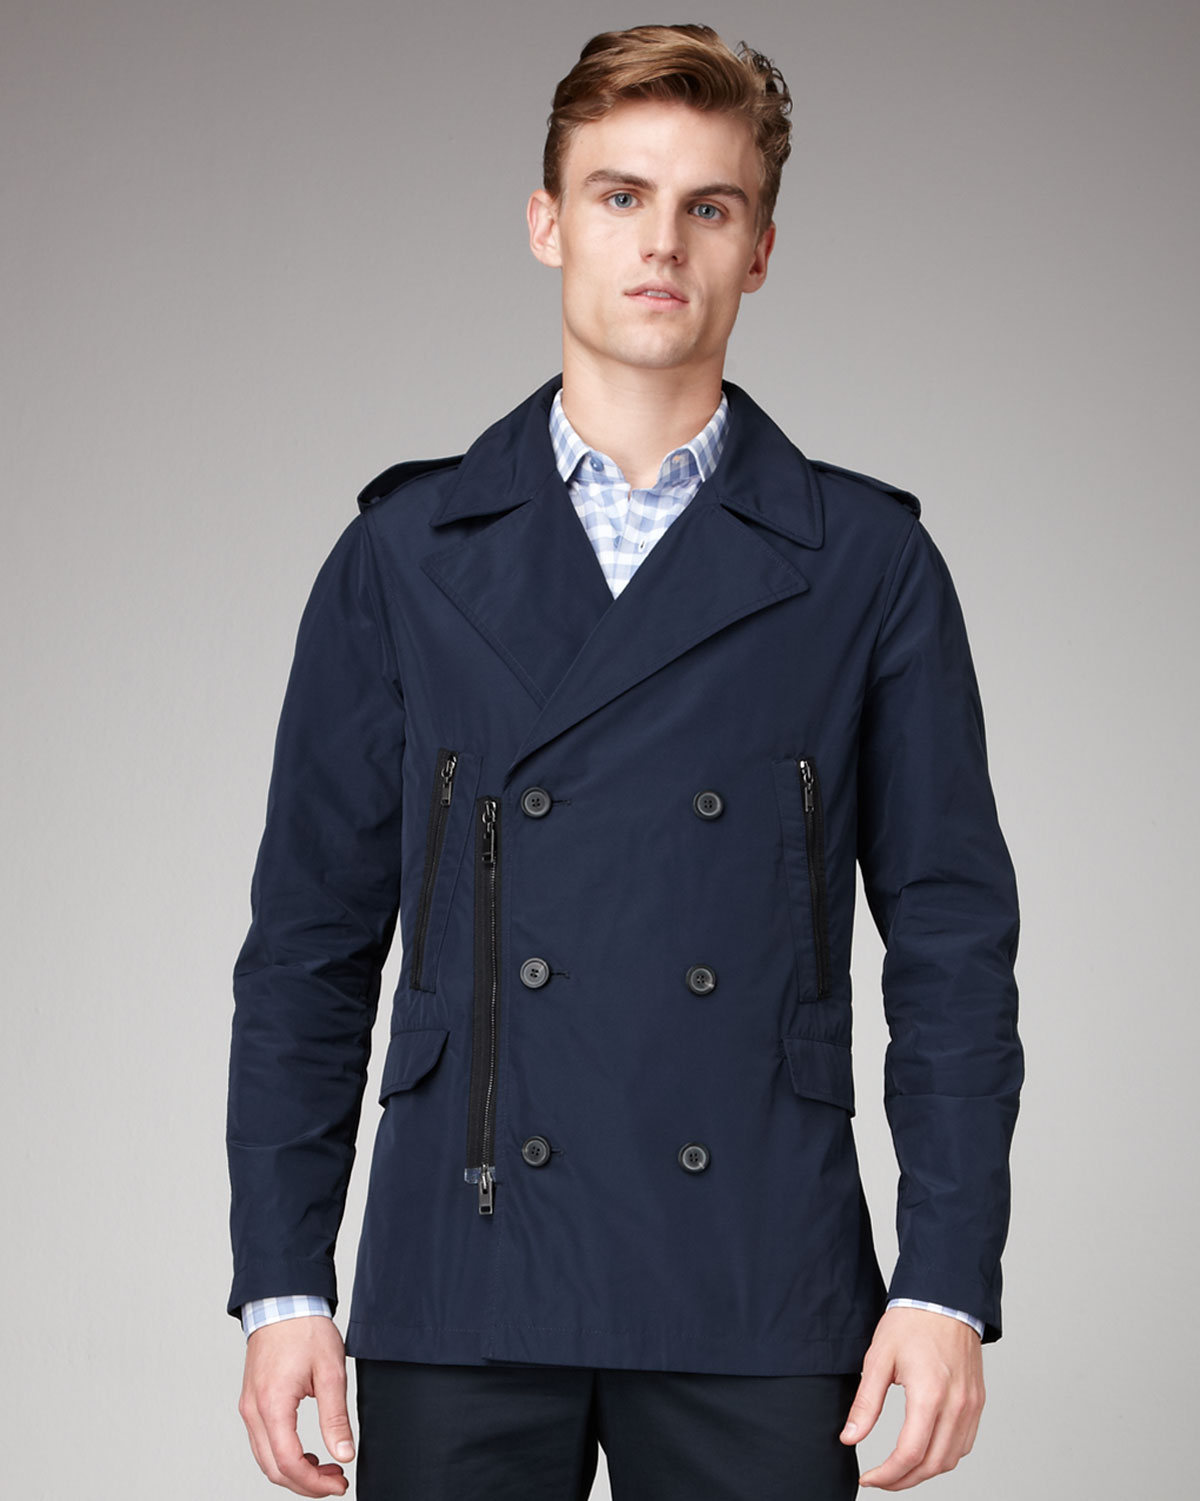 Navy Pea Coats For Men 48Mza1